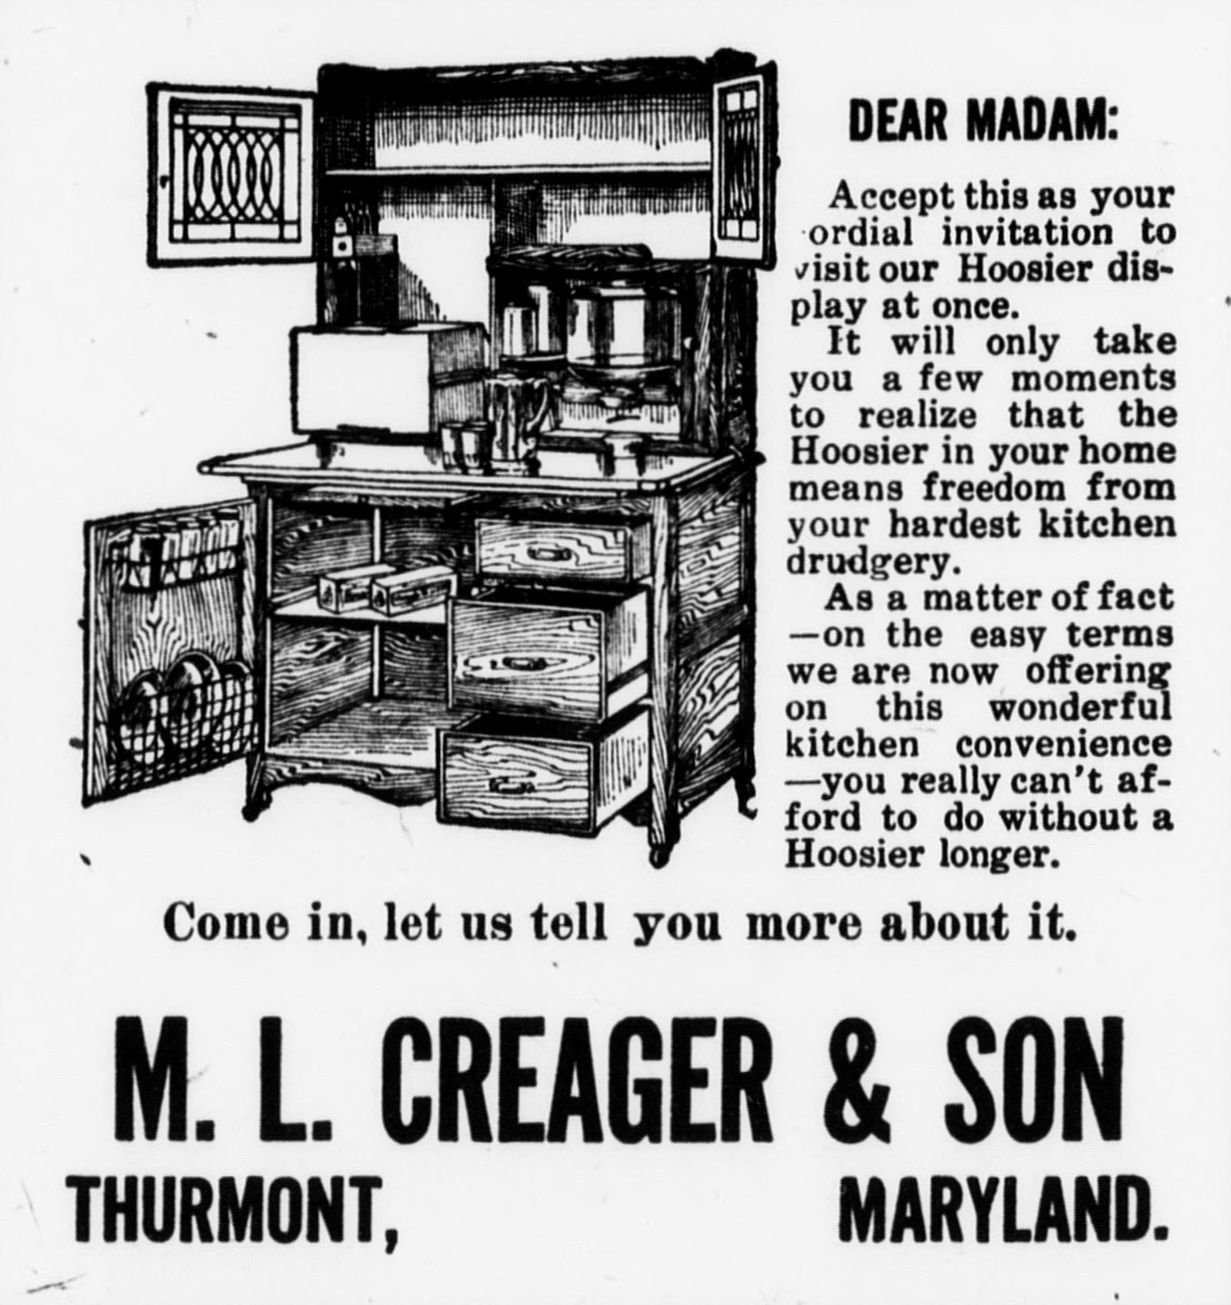 M L Creager Son In Thurmont Maryland Advertise Hoosier Cabinets As Freedom From Your Hardest Kitc With Images Hoosier Cabinets She Shed Vintage Advertisements